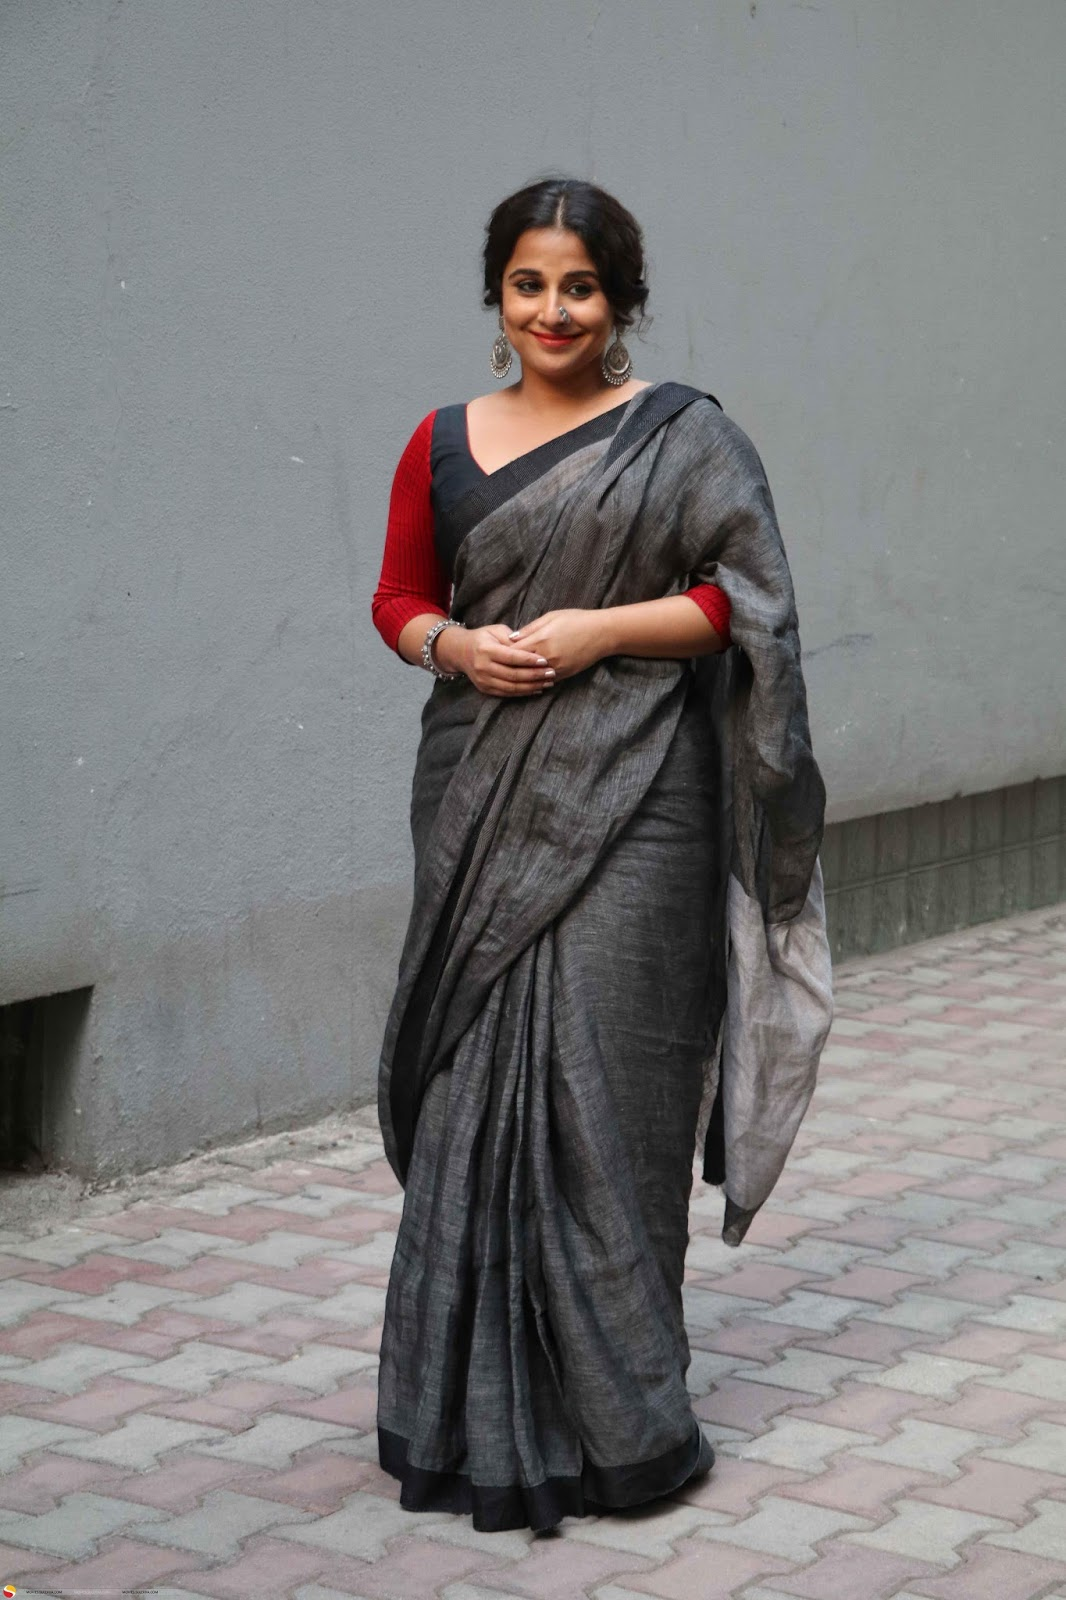 Beautiful Hindi Actress Vidya Balan Long Hair Photos In Black Saree